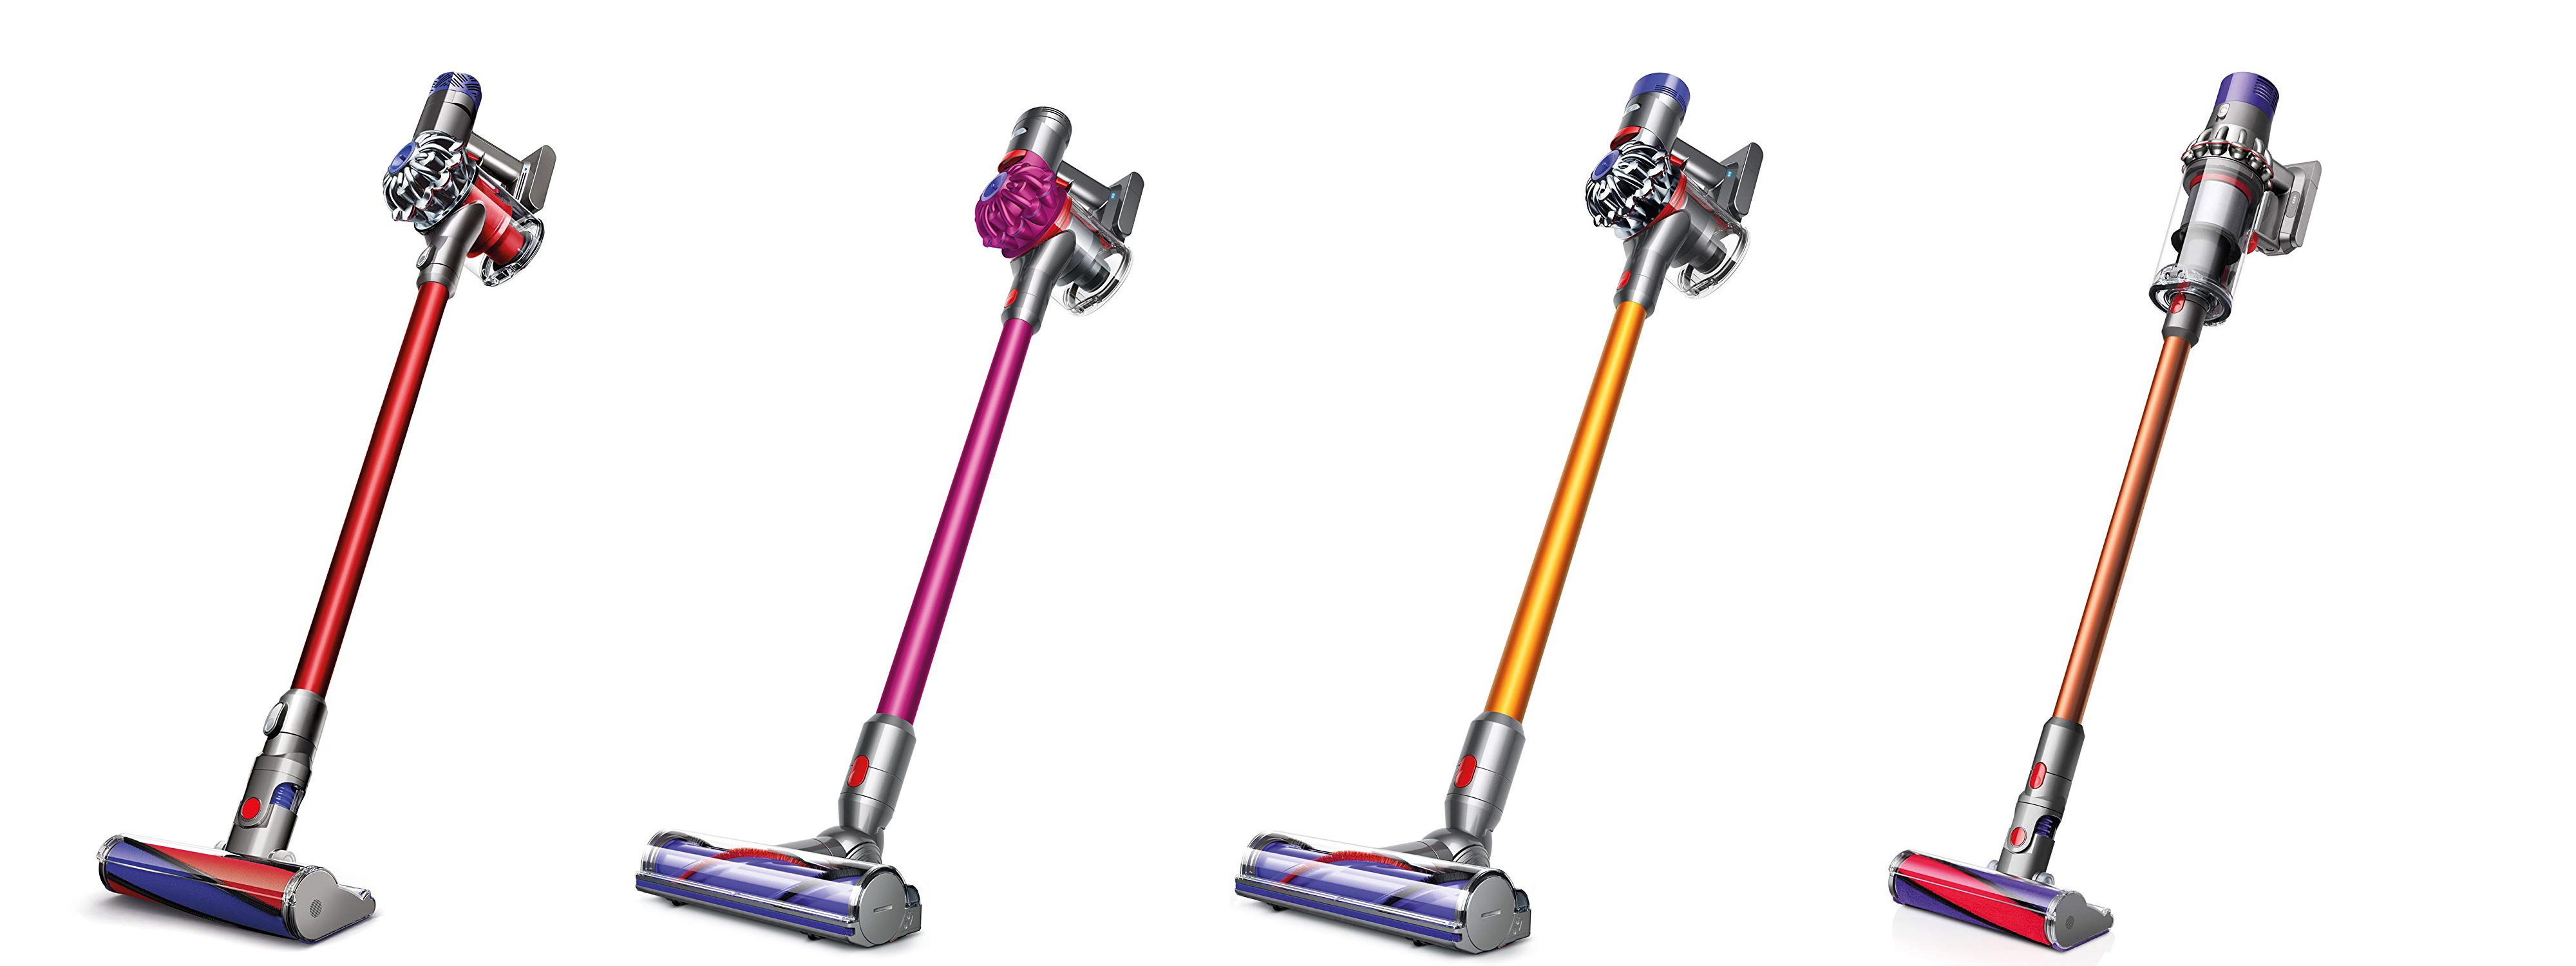 What Is The Best Cordless Vacuum Stick?